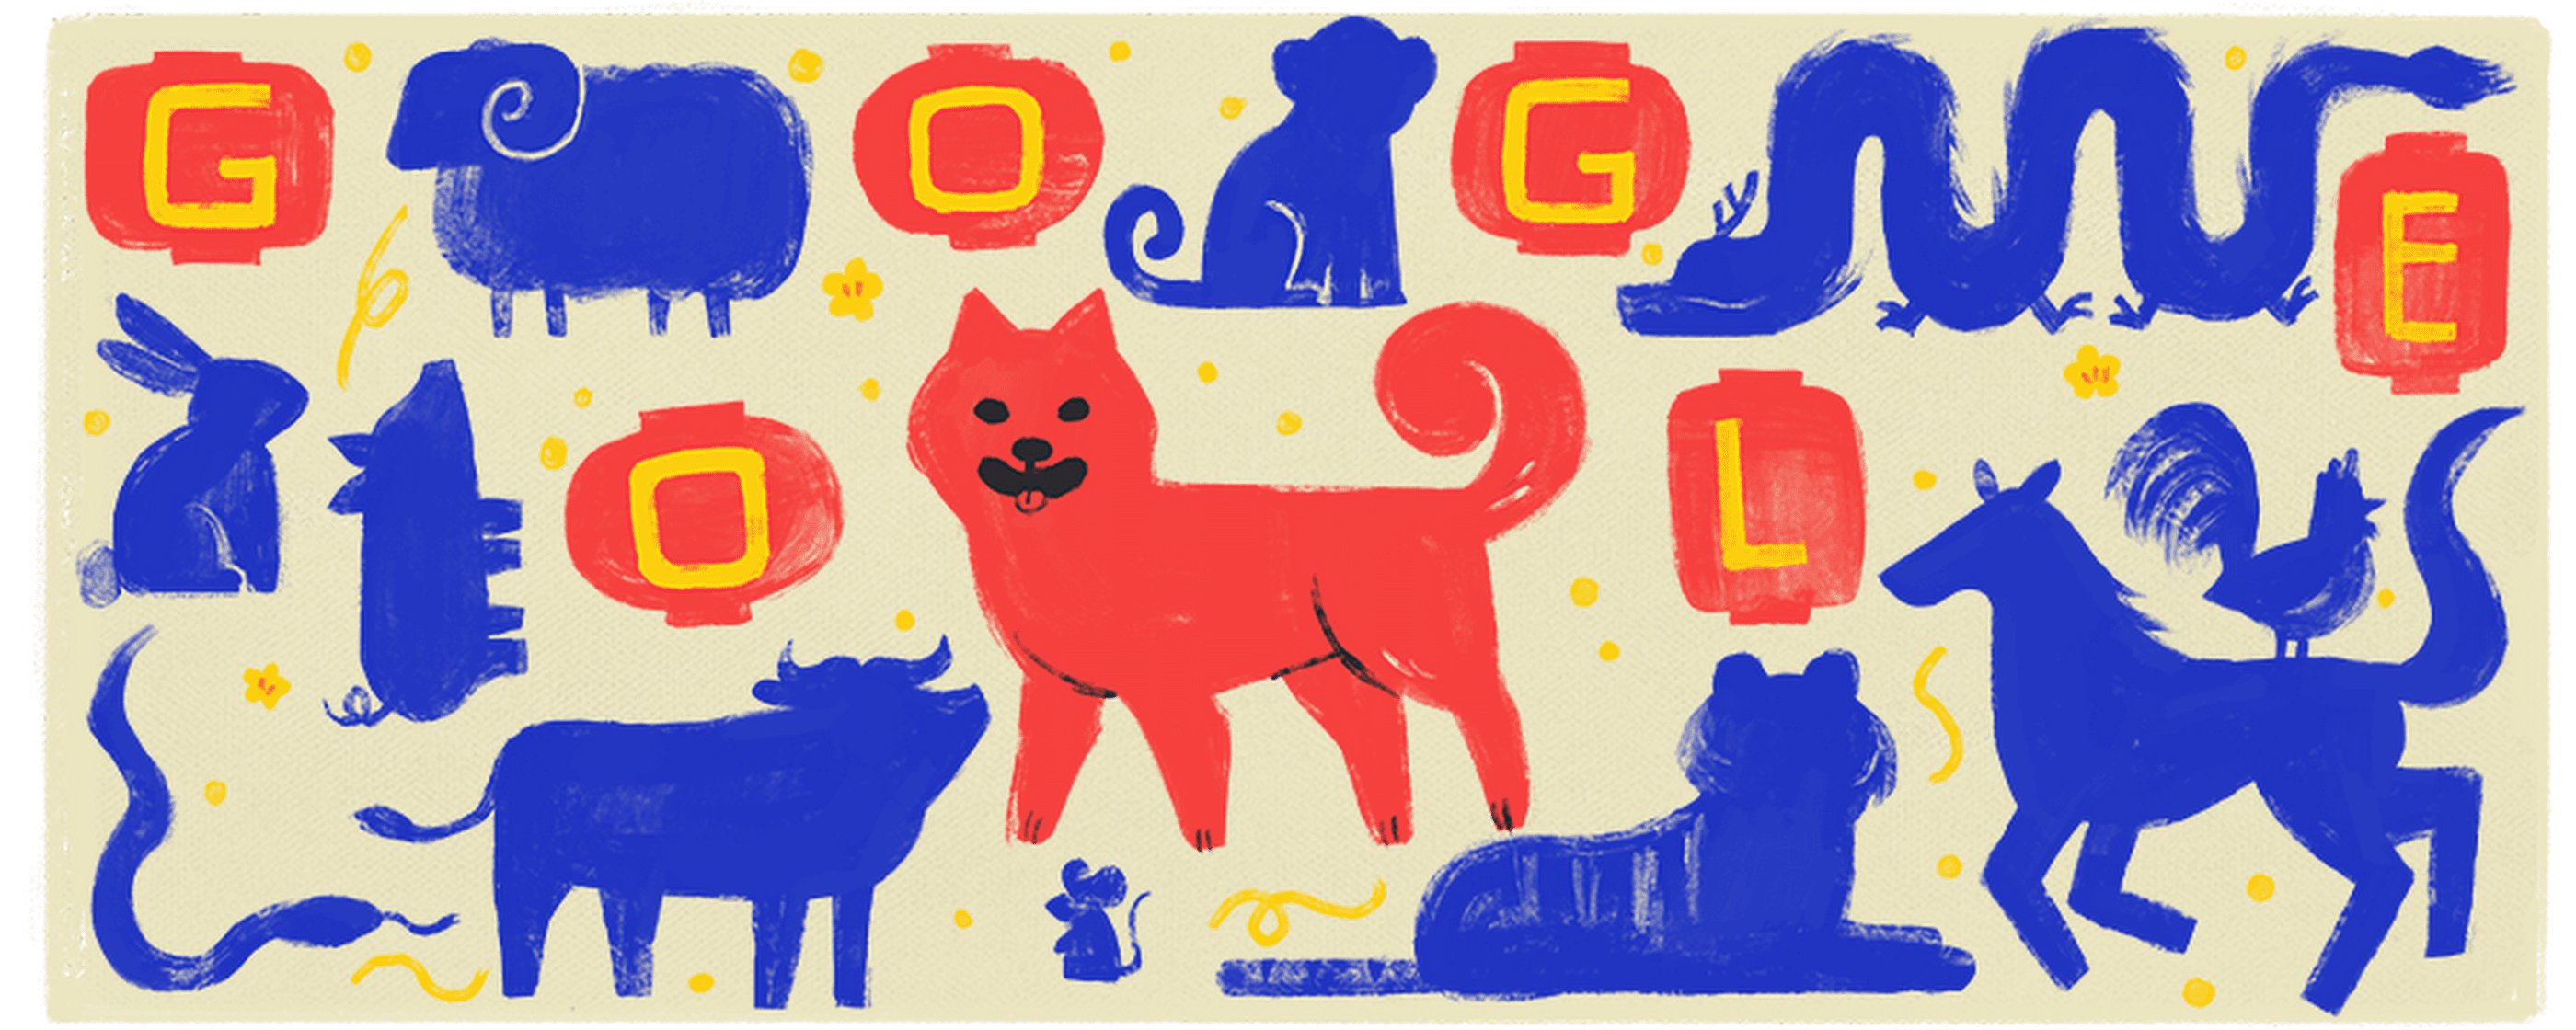 Lunar New Year 2018 Doodle